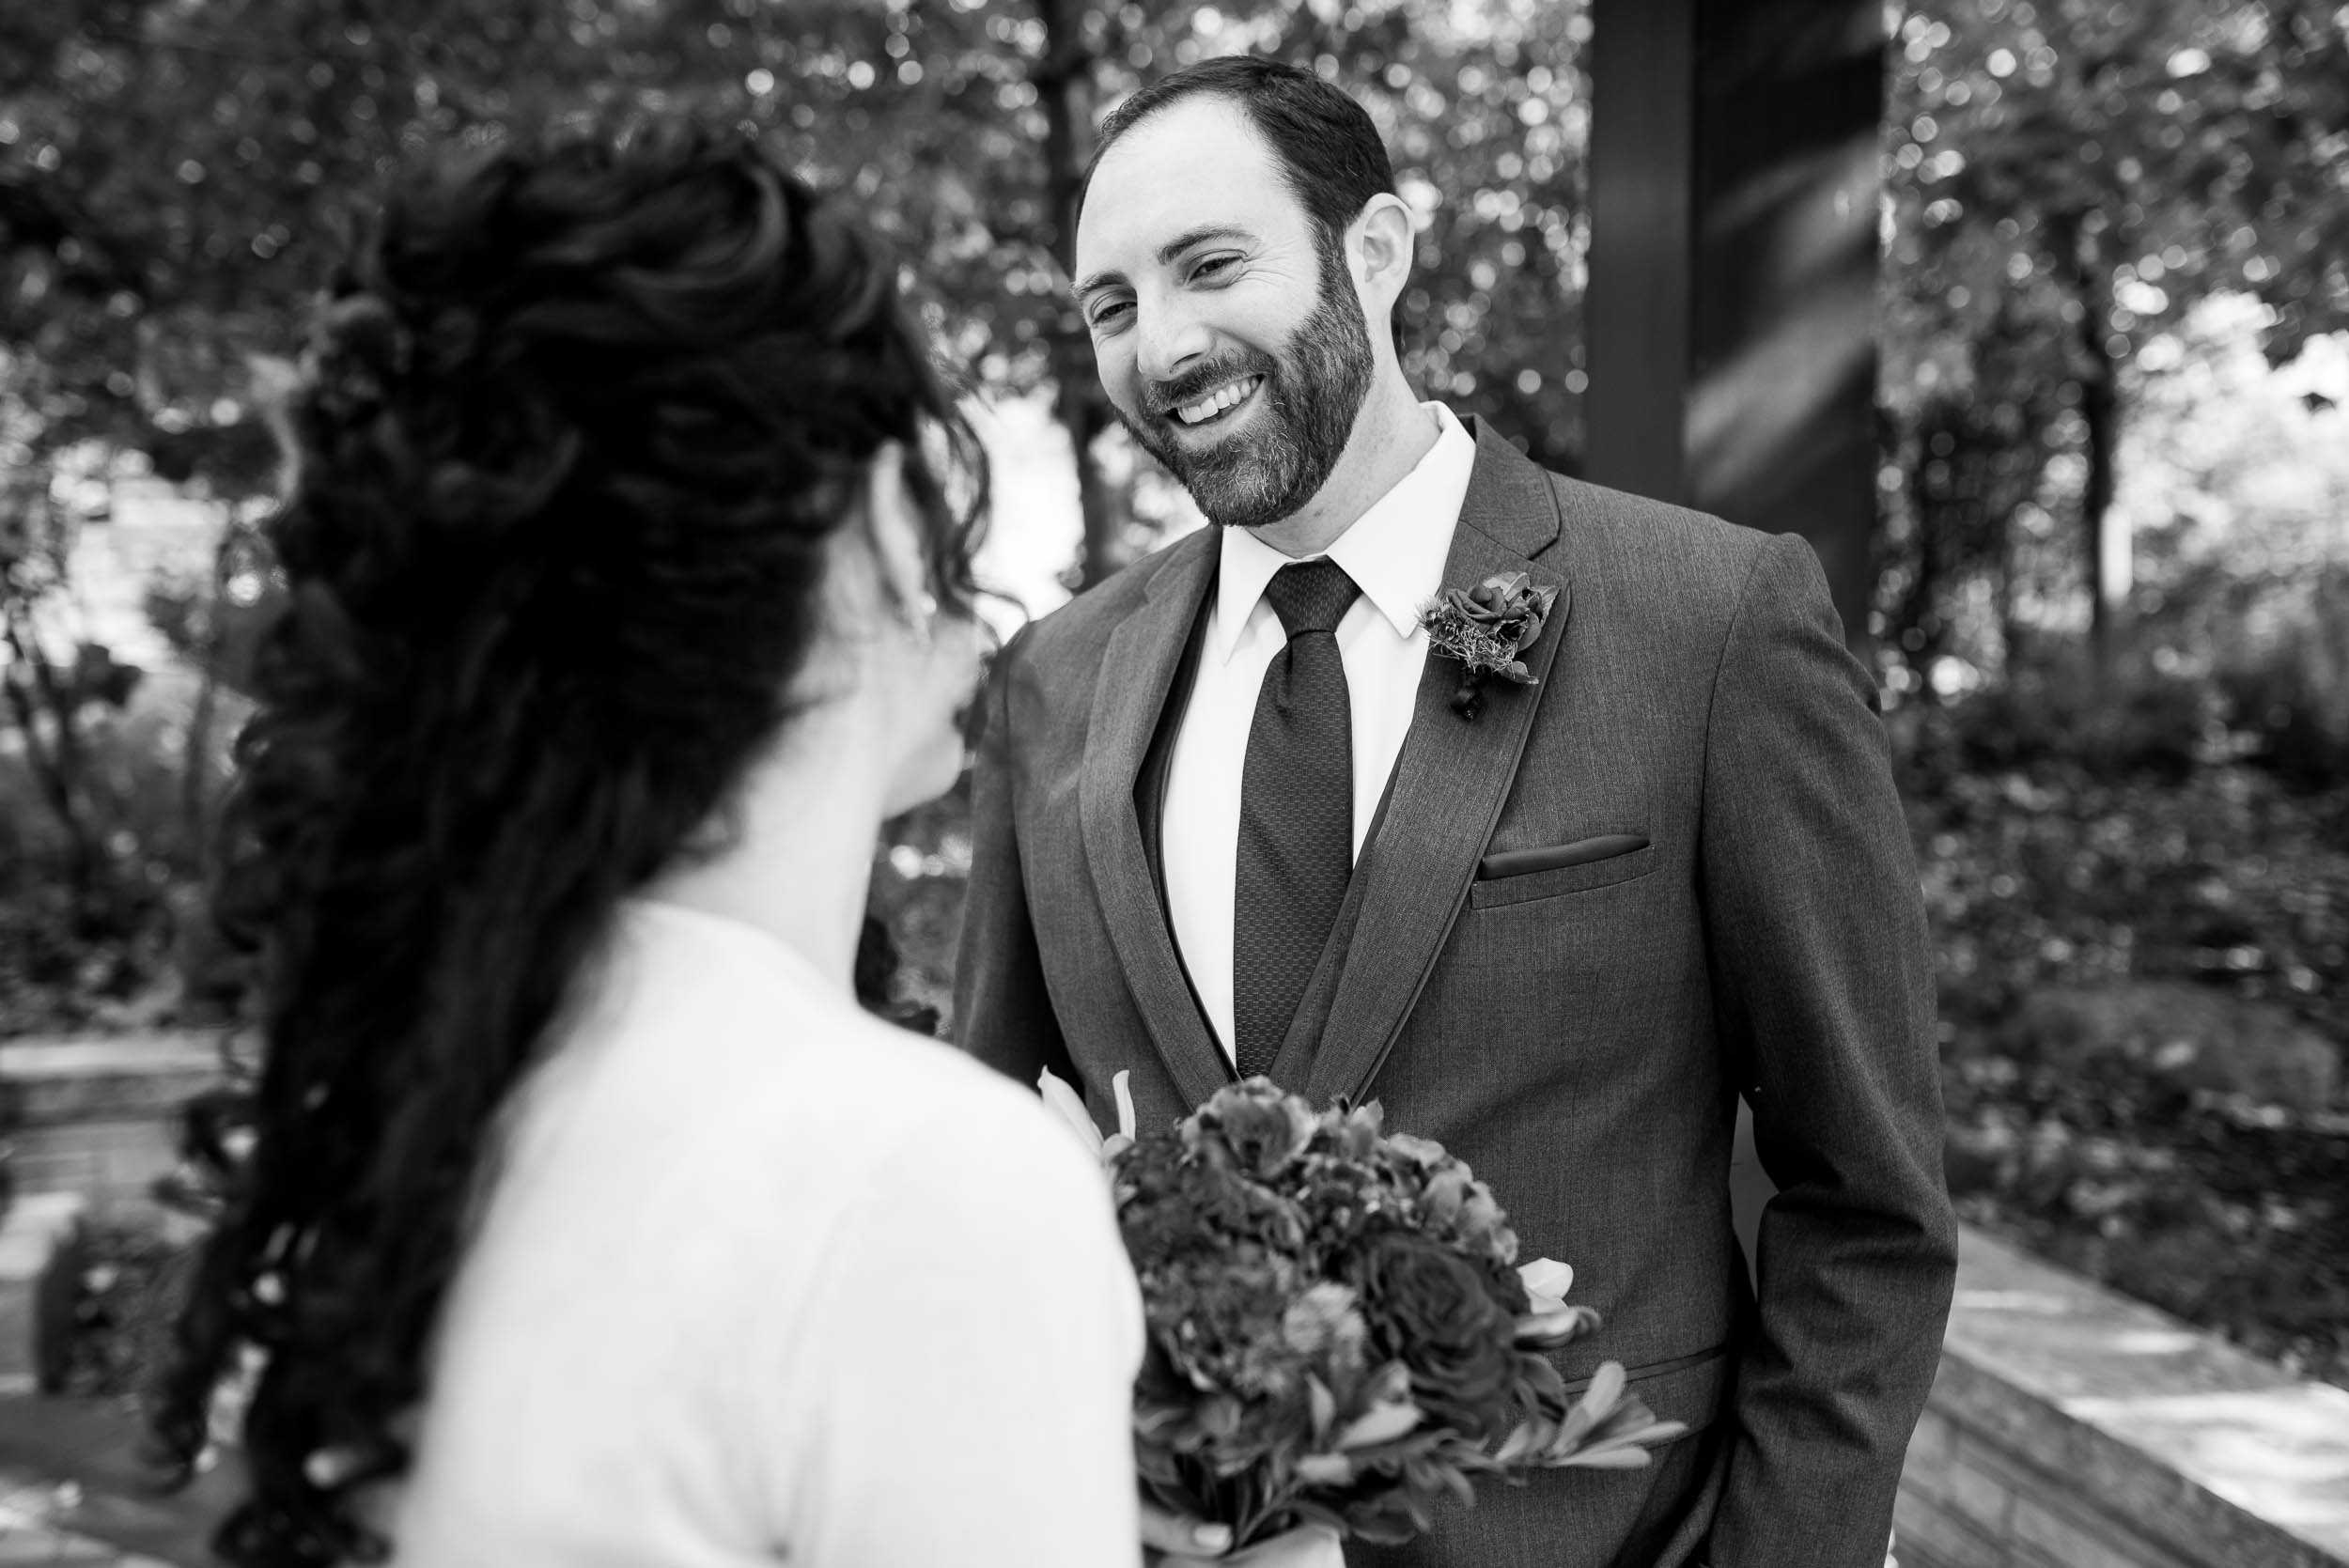 First look moment during an Independence Grove Chicago wedding.